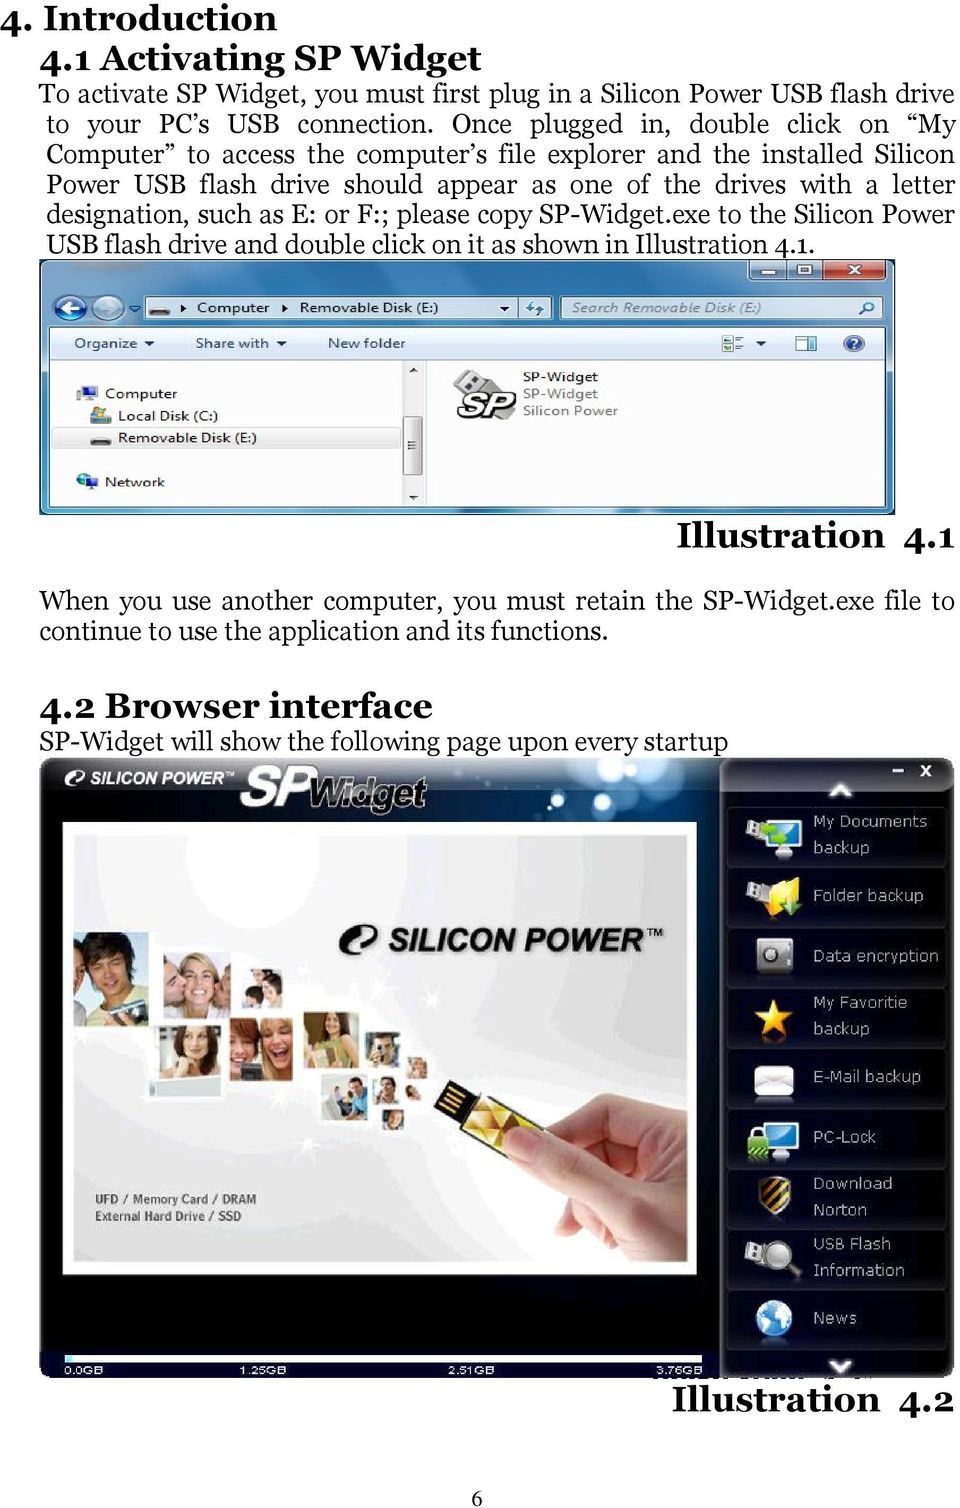 letter designation, such as E: or F:; please copy SP-Widget.exe to the Silicon Power USB flash drive and double click on it as shown in Illustration 4.